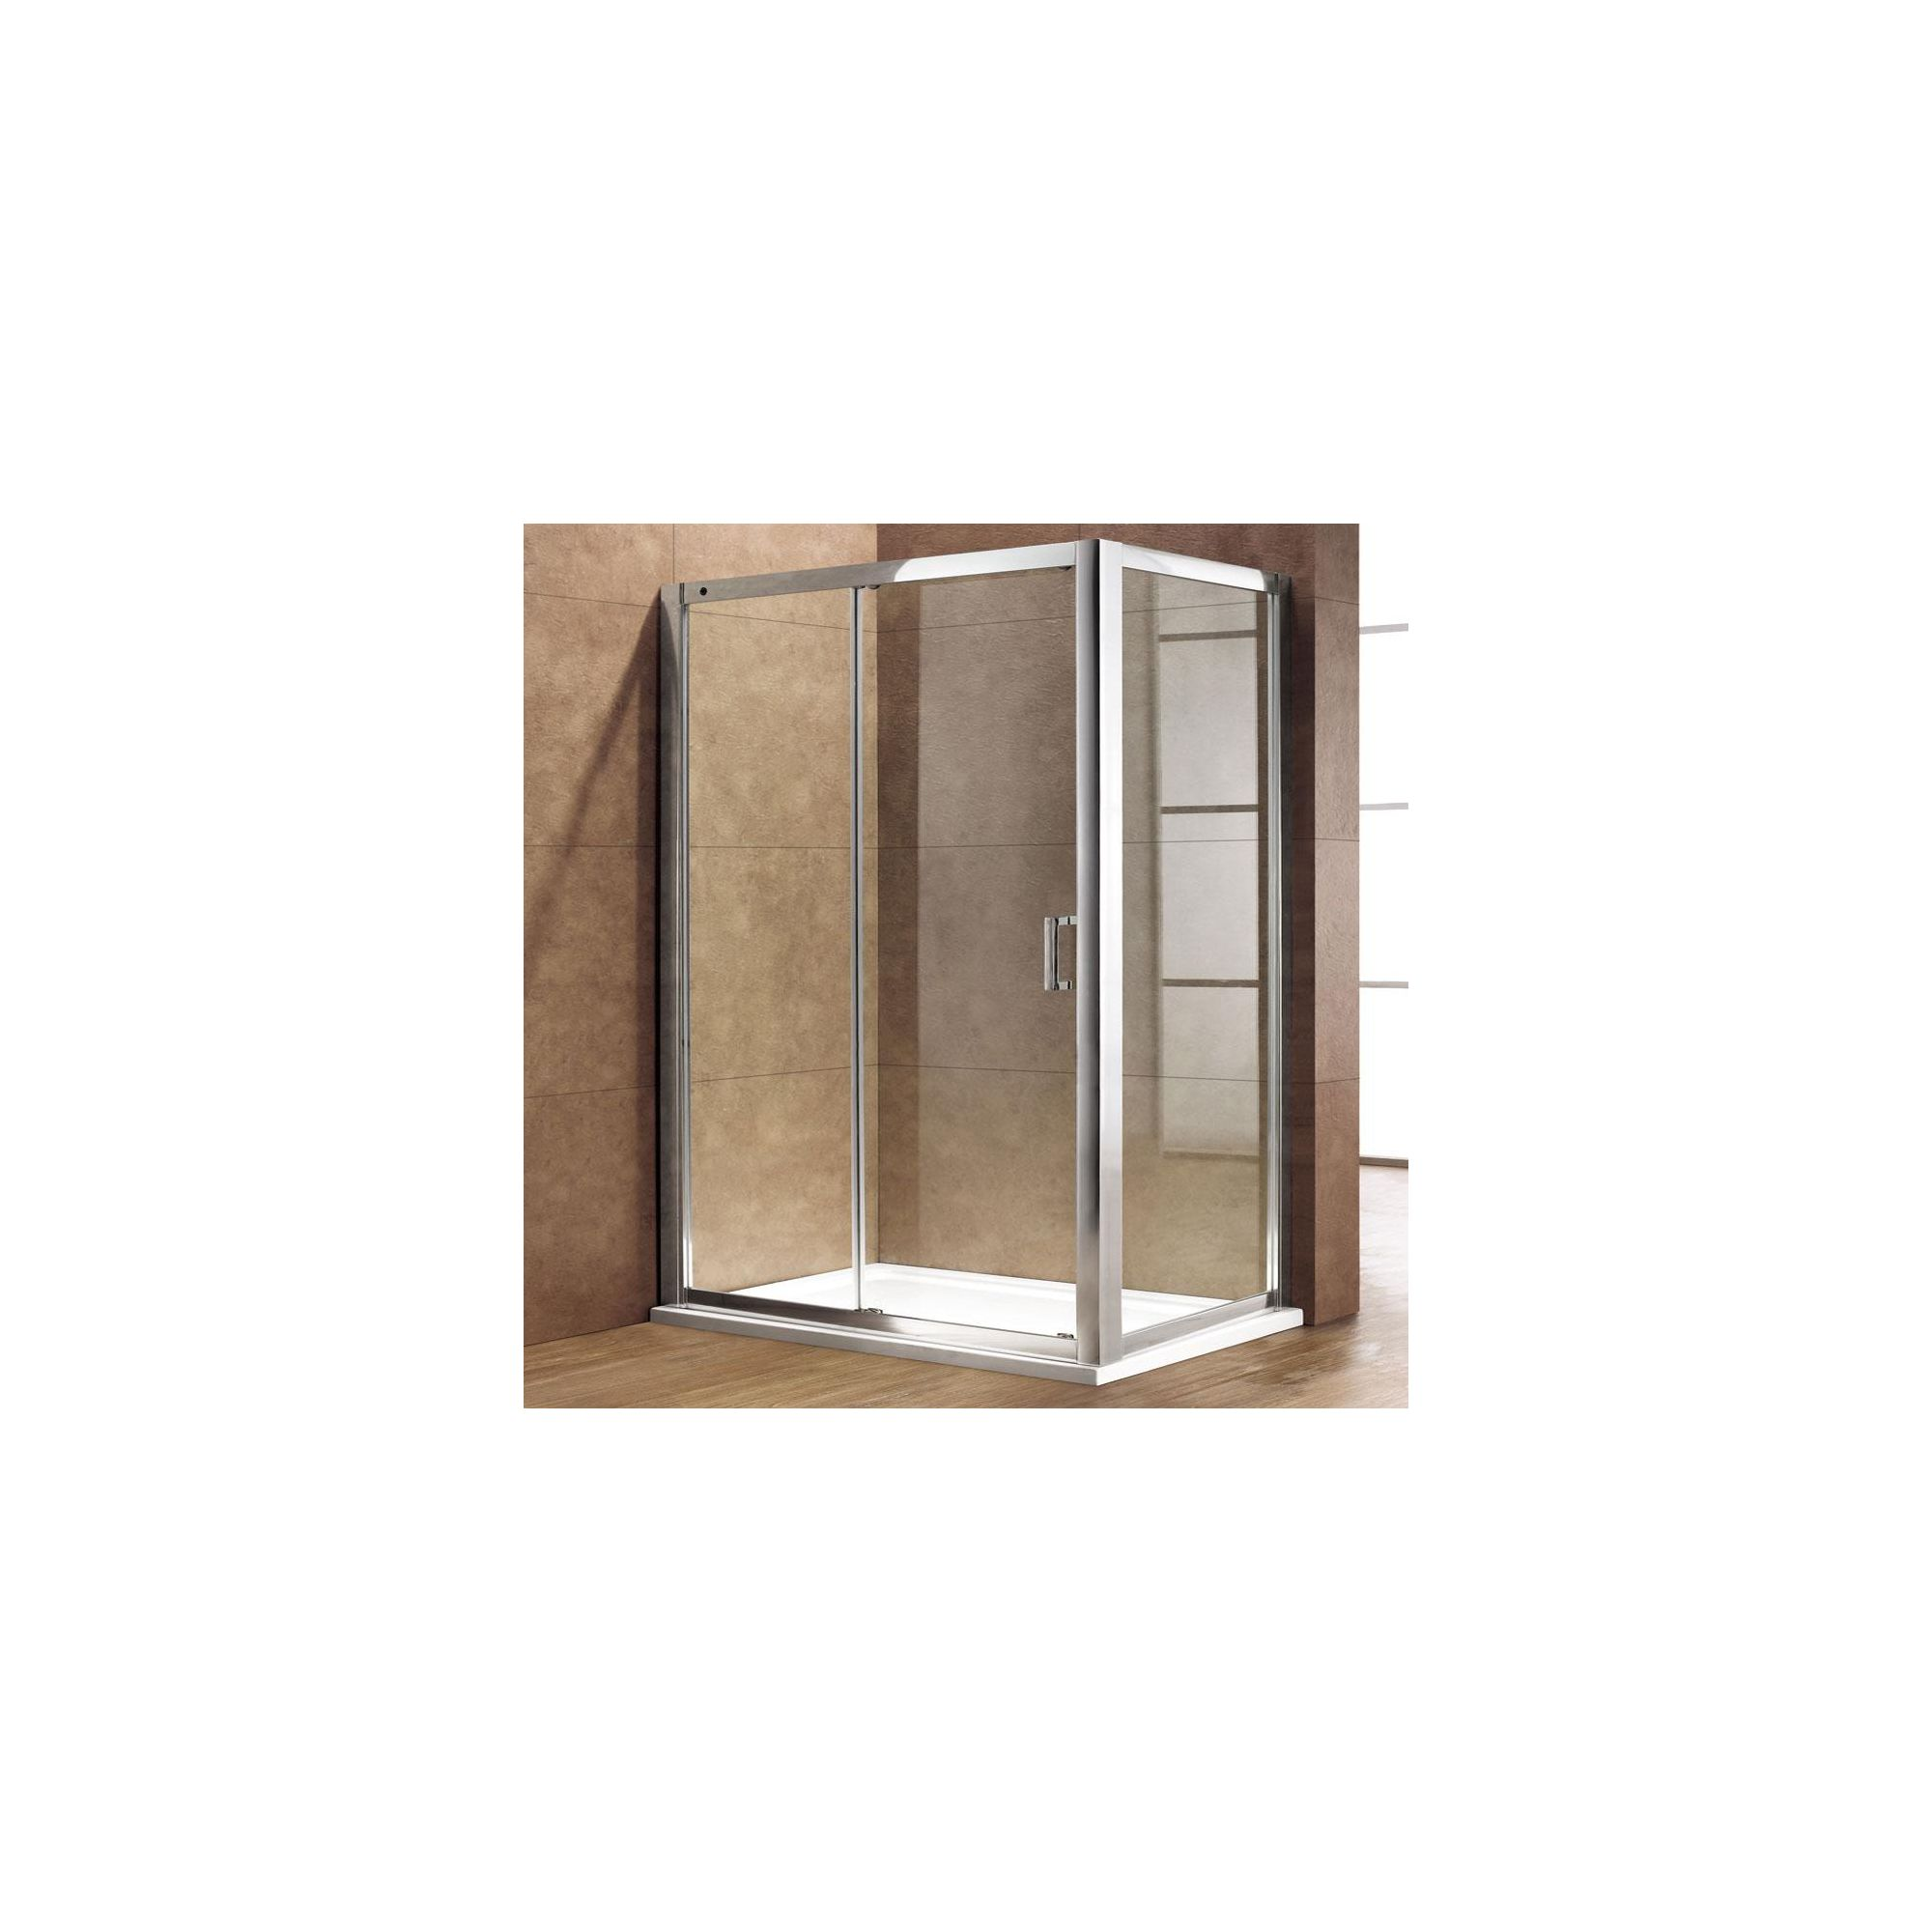 Duchy Premium Single Sliding Door Shower Enclosure, 1400mm x 760mm, 8mm Glass, Low Profile Tray at Tesco Direct